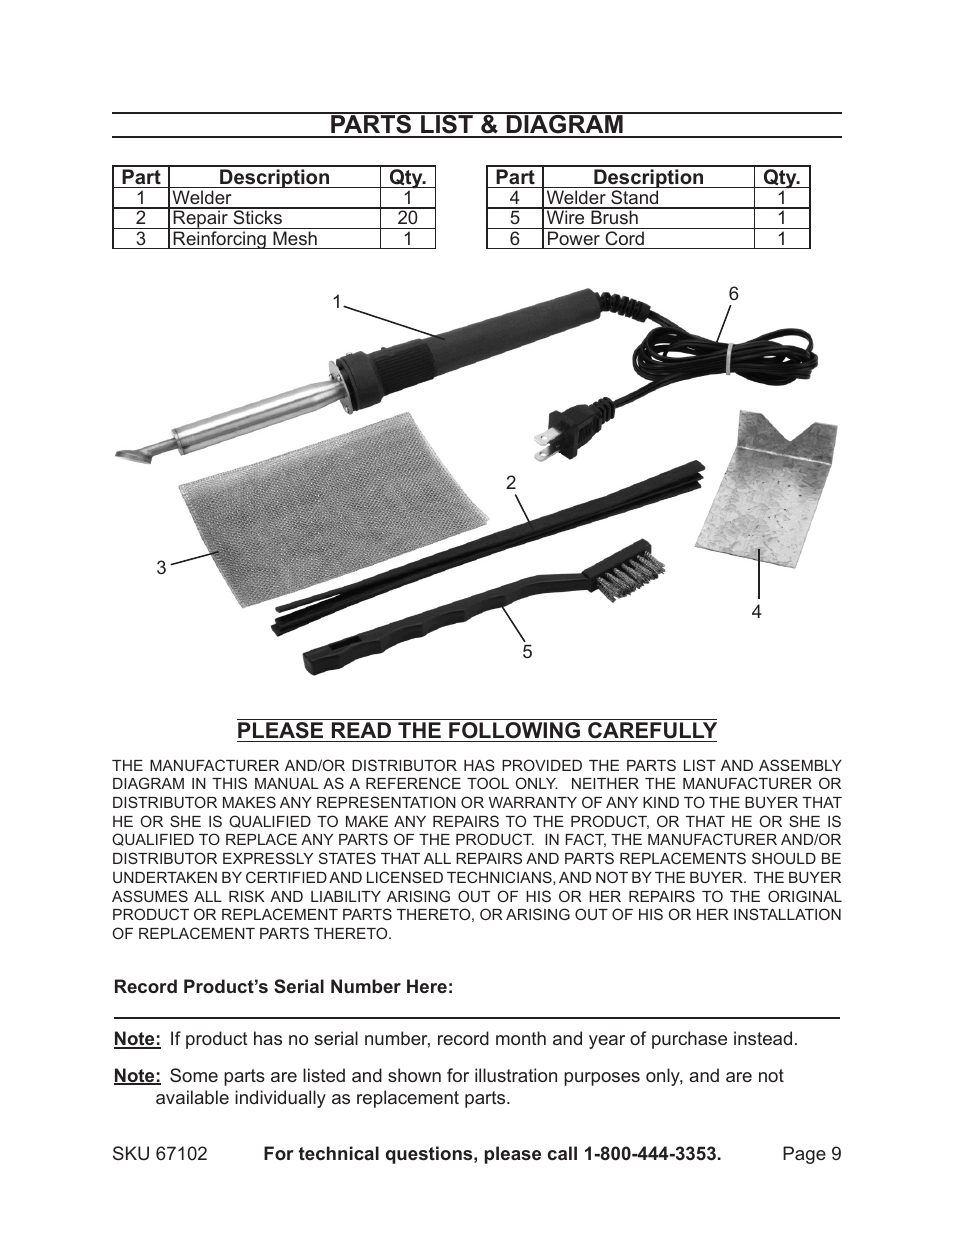 Parts List Diagram Chicago Electric 80w Plastic Welding Kit With Of Iron 67102 User Manual Page 9 10